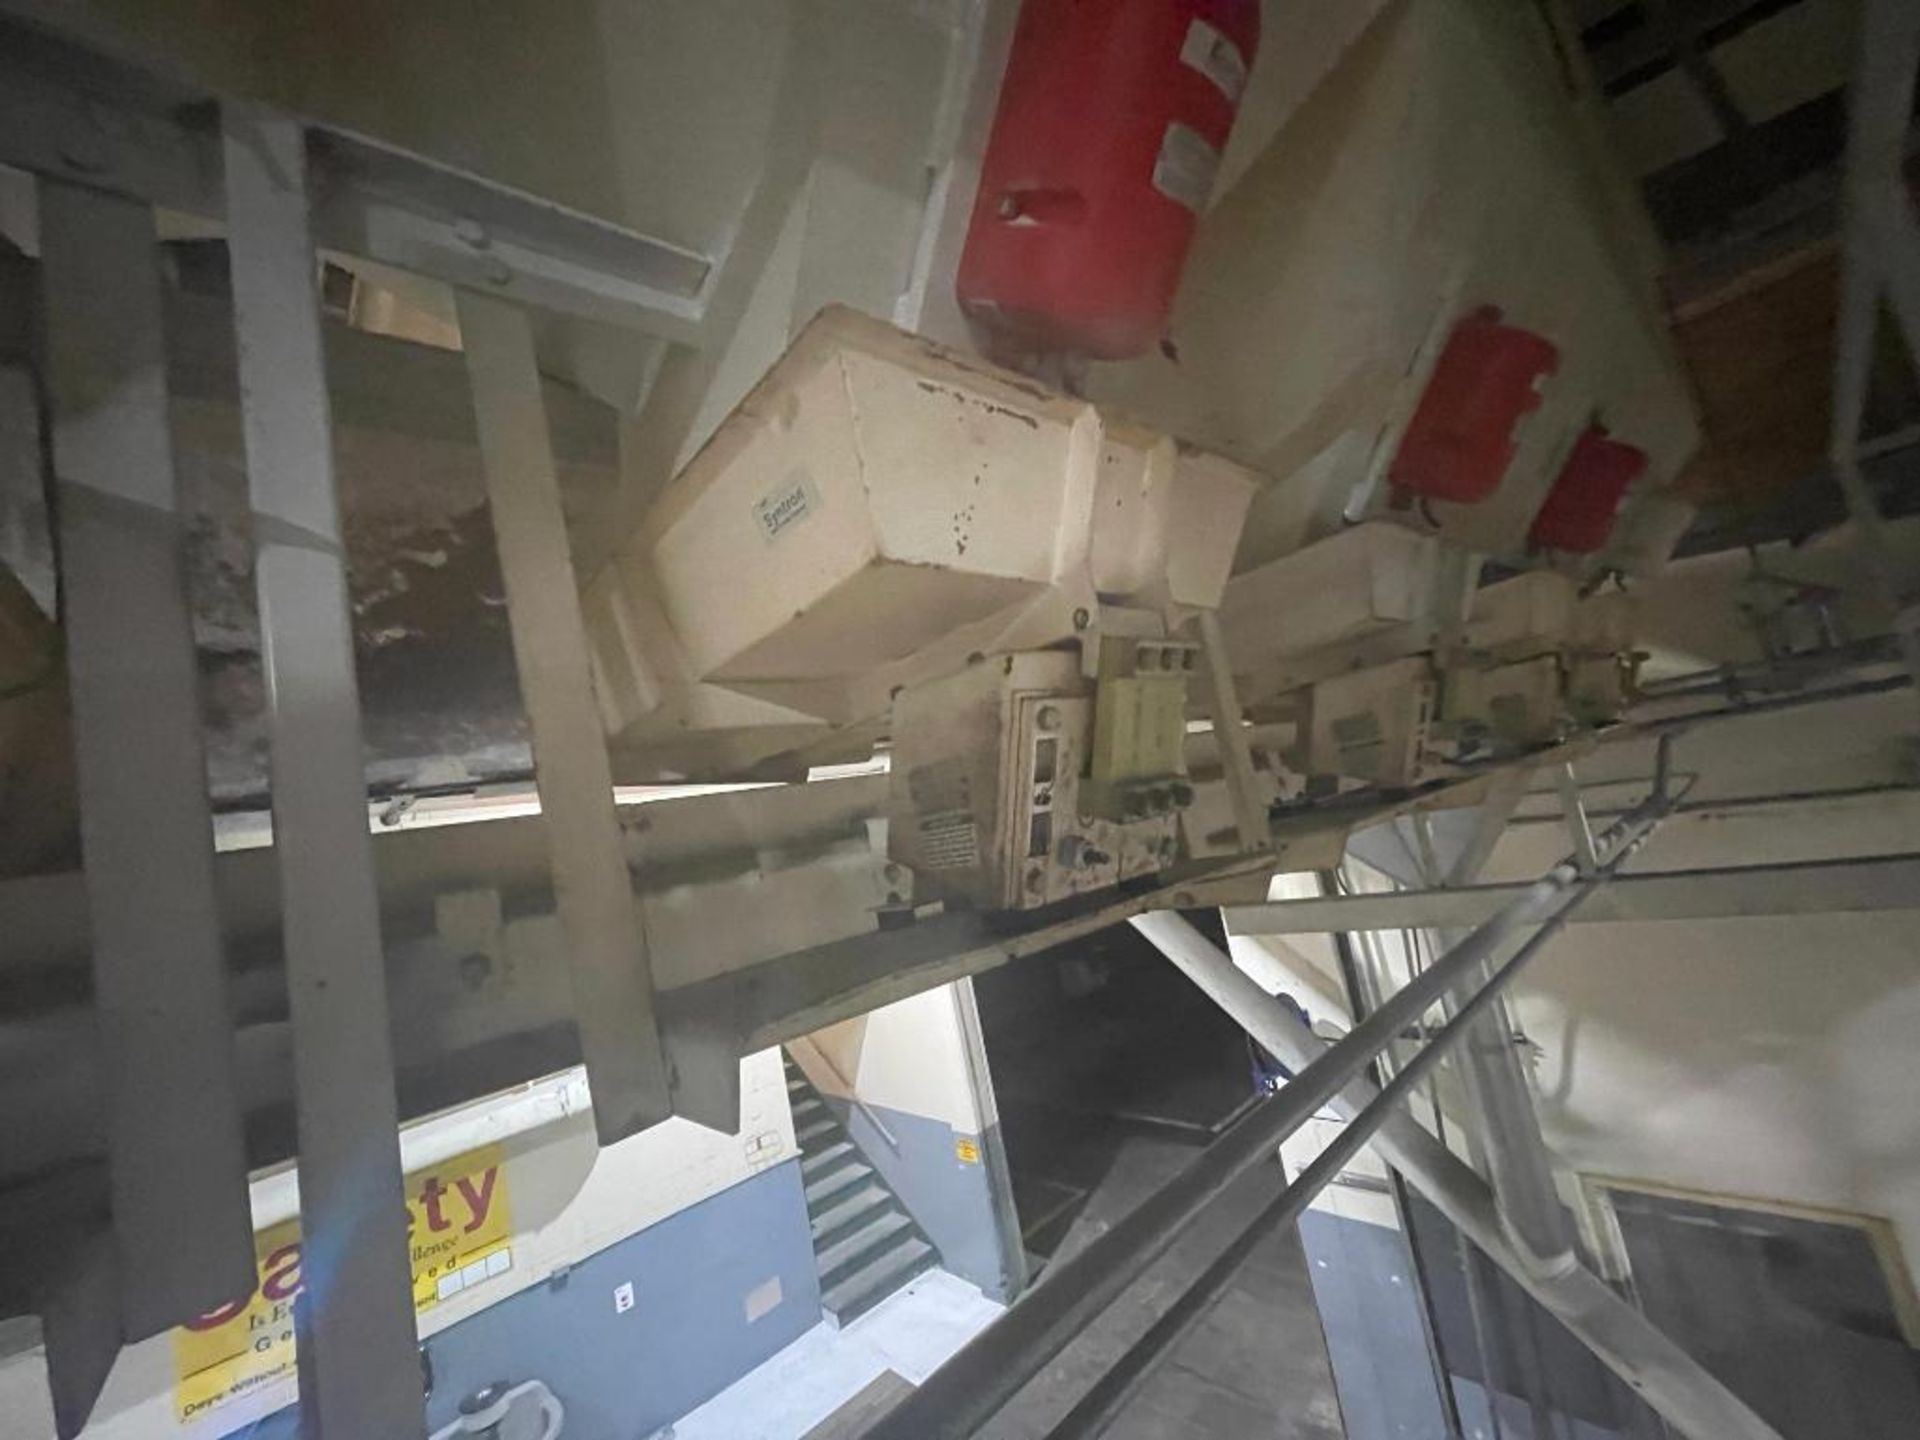 Aseeco 5-bin blending system with 5 Syntron vibratory feeders on bottom - Image 6 of 18